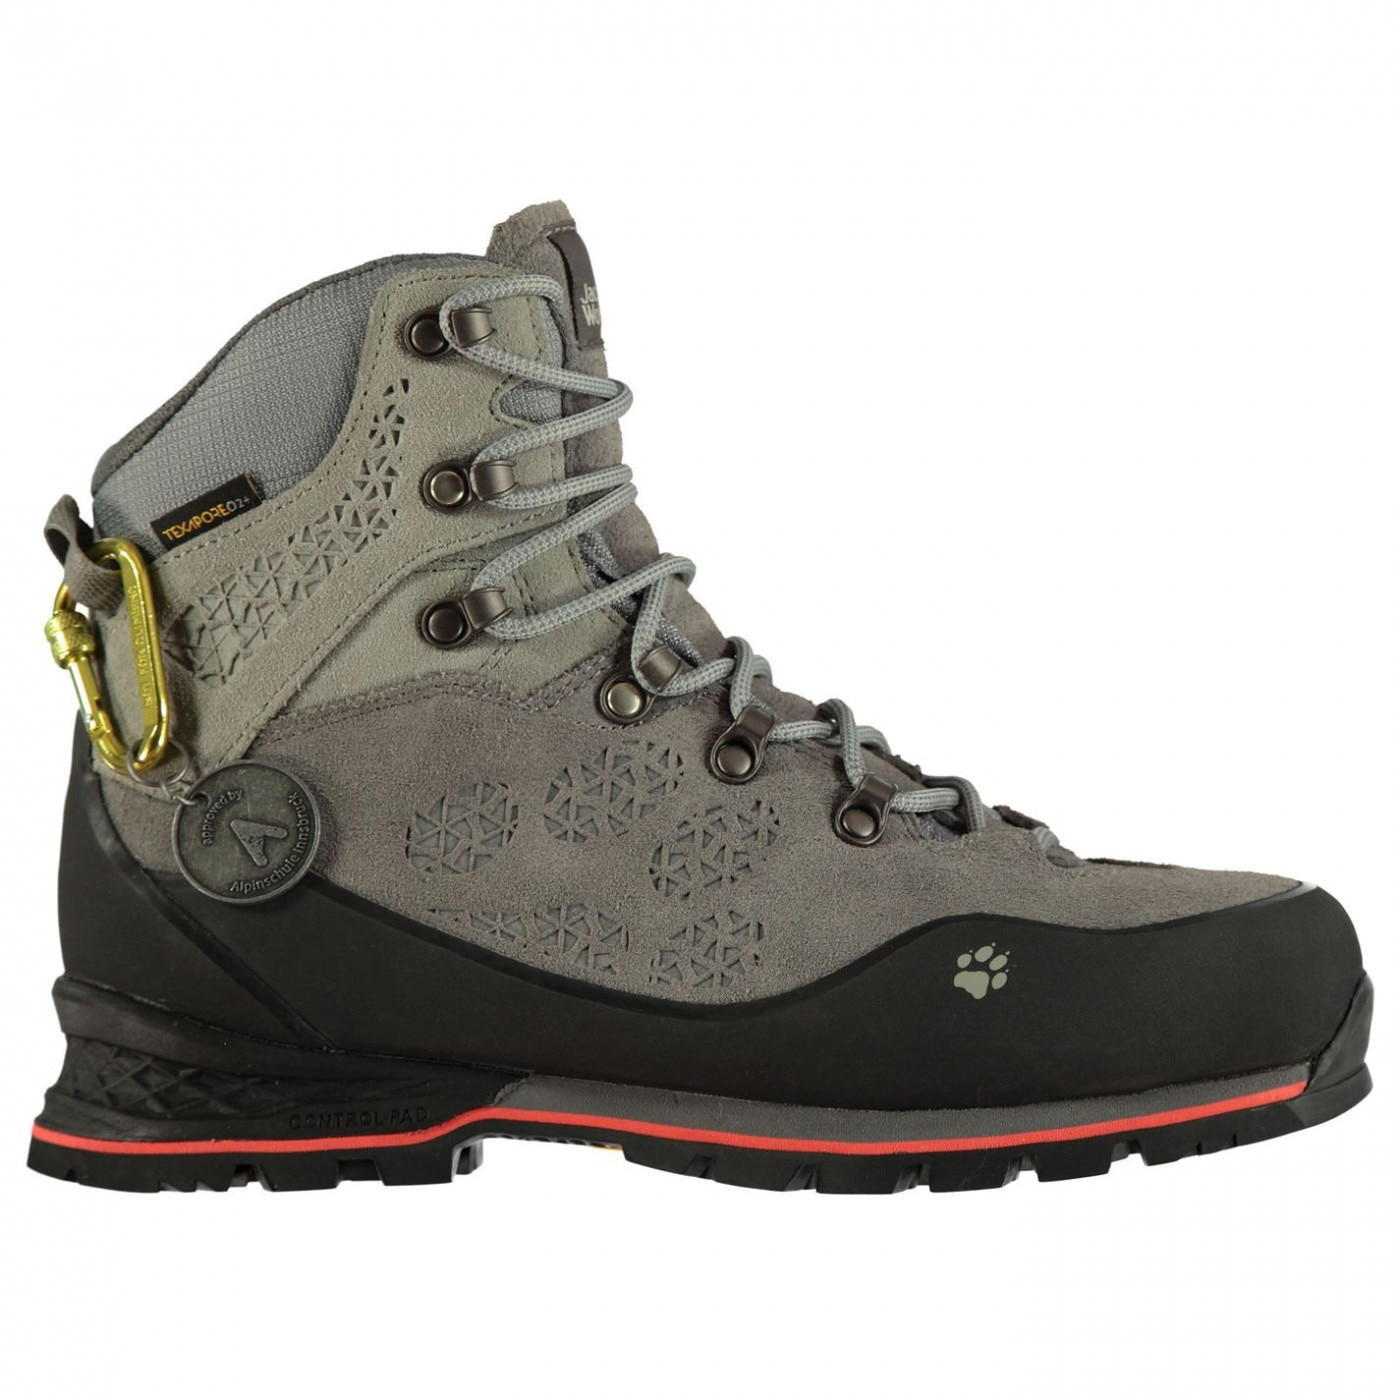 Jack Wolfskin Wilderness Taxapore Mid Ladies Walking Boots